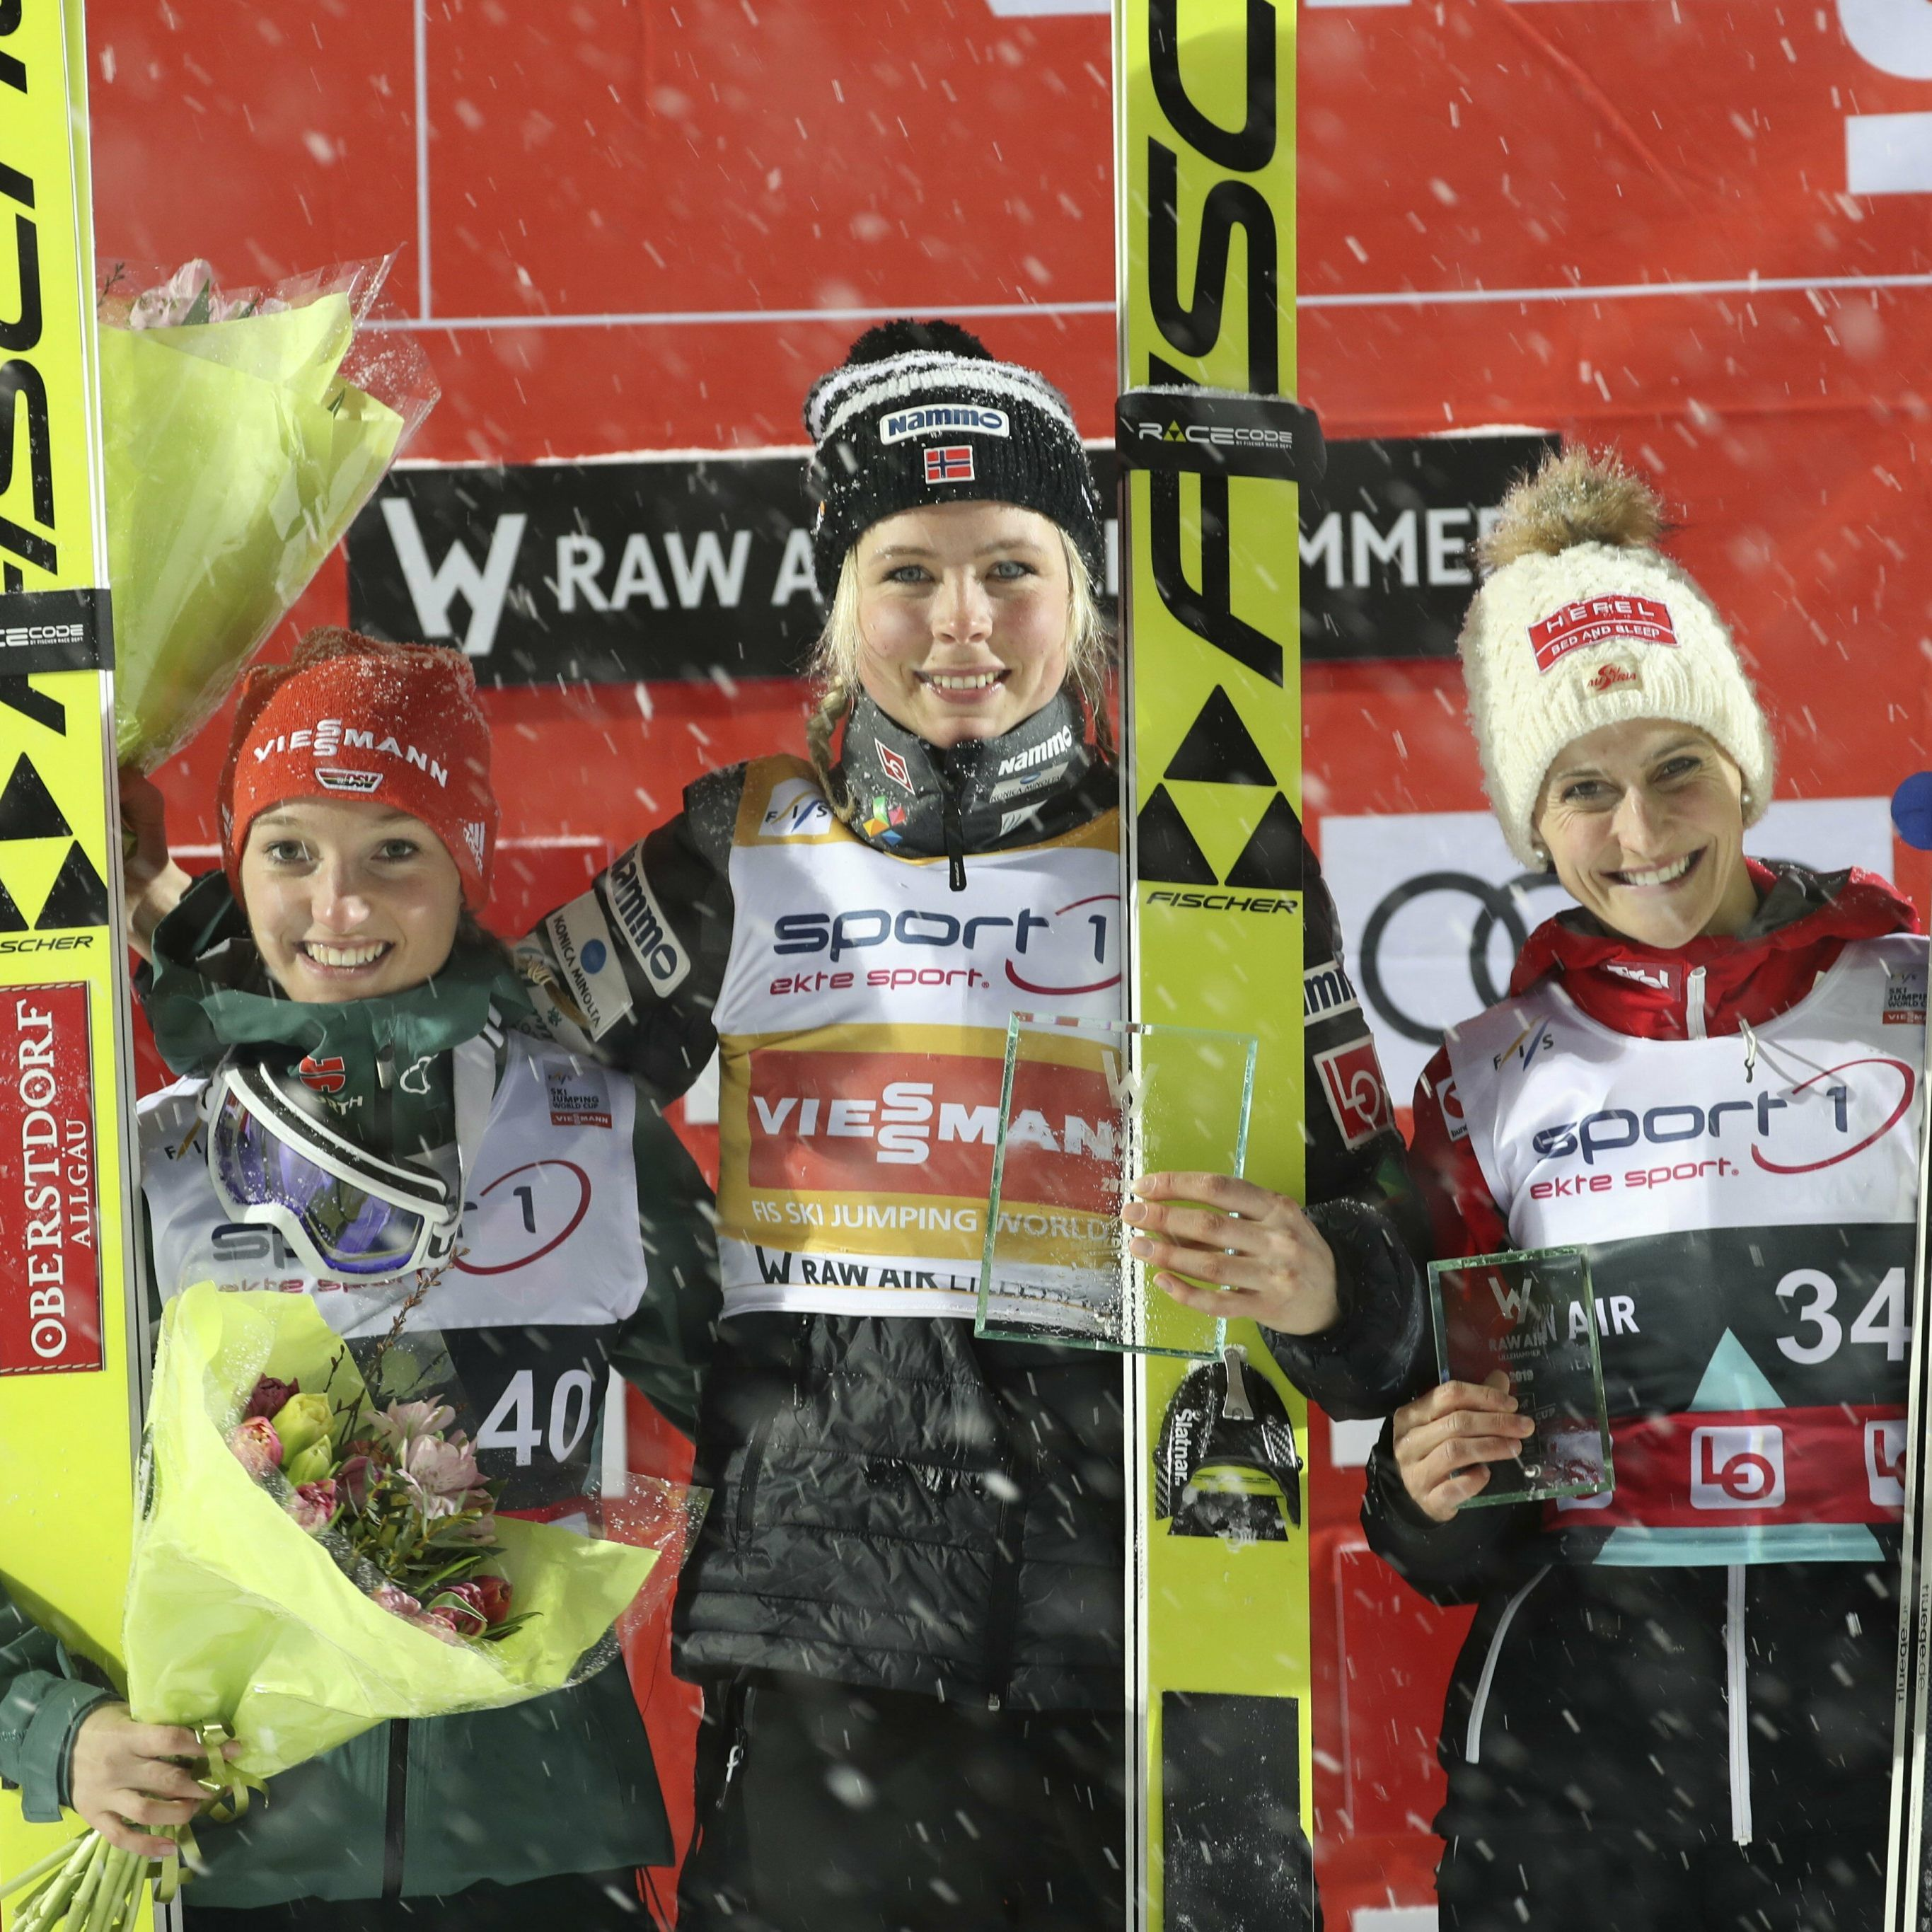 From left, second place Katharina Althaus (GER), first placed Maren Lundby (NOR) and third placed Eva Pinkelnig (AUT